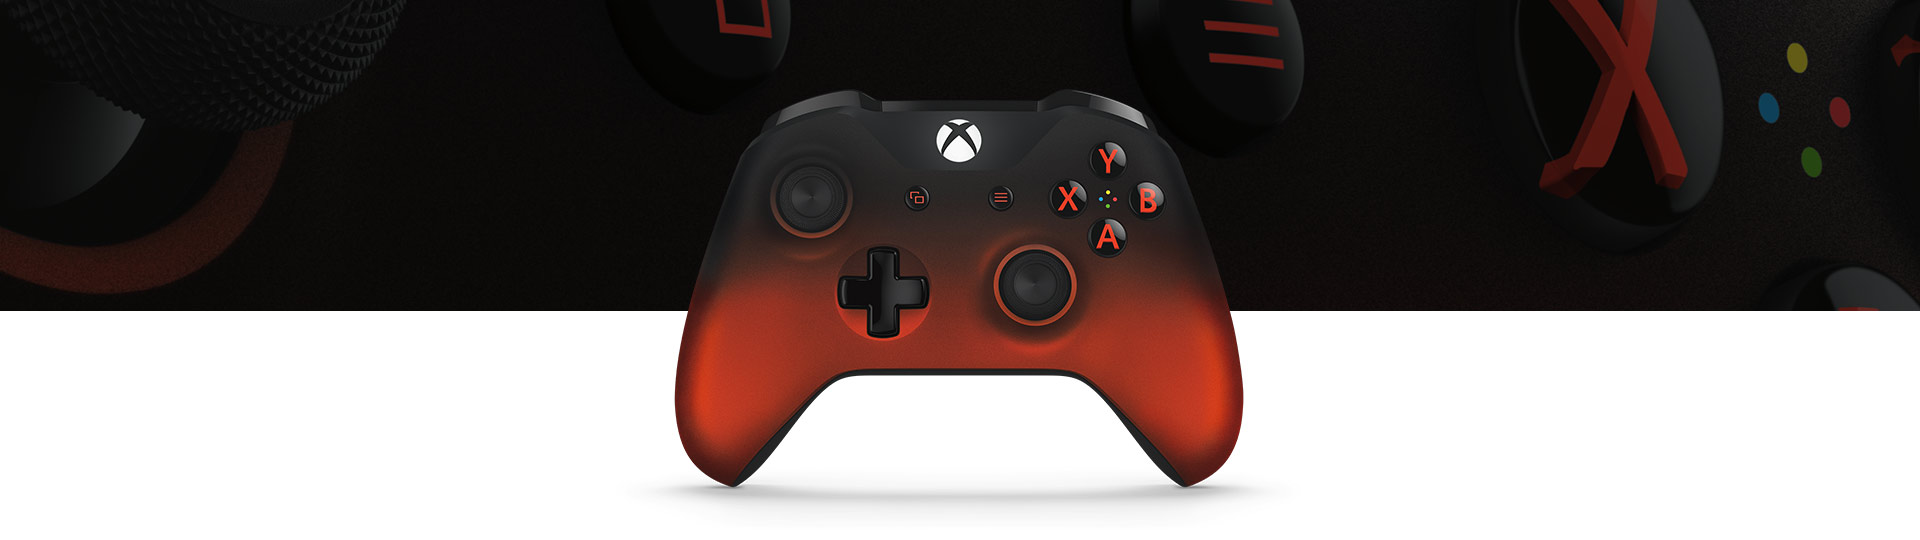 Xbox Wireless Controller – Volcano Shadow Special Edition